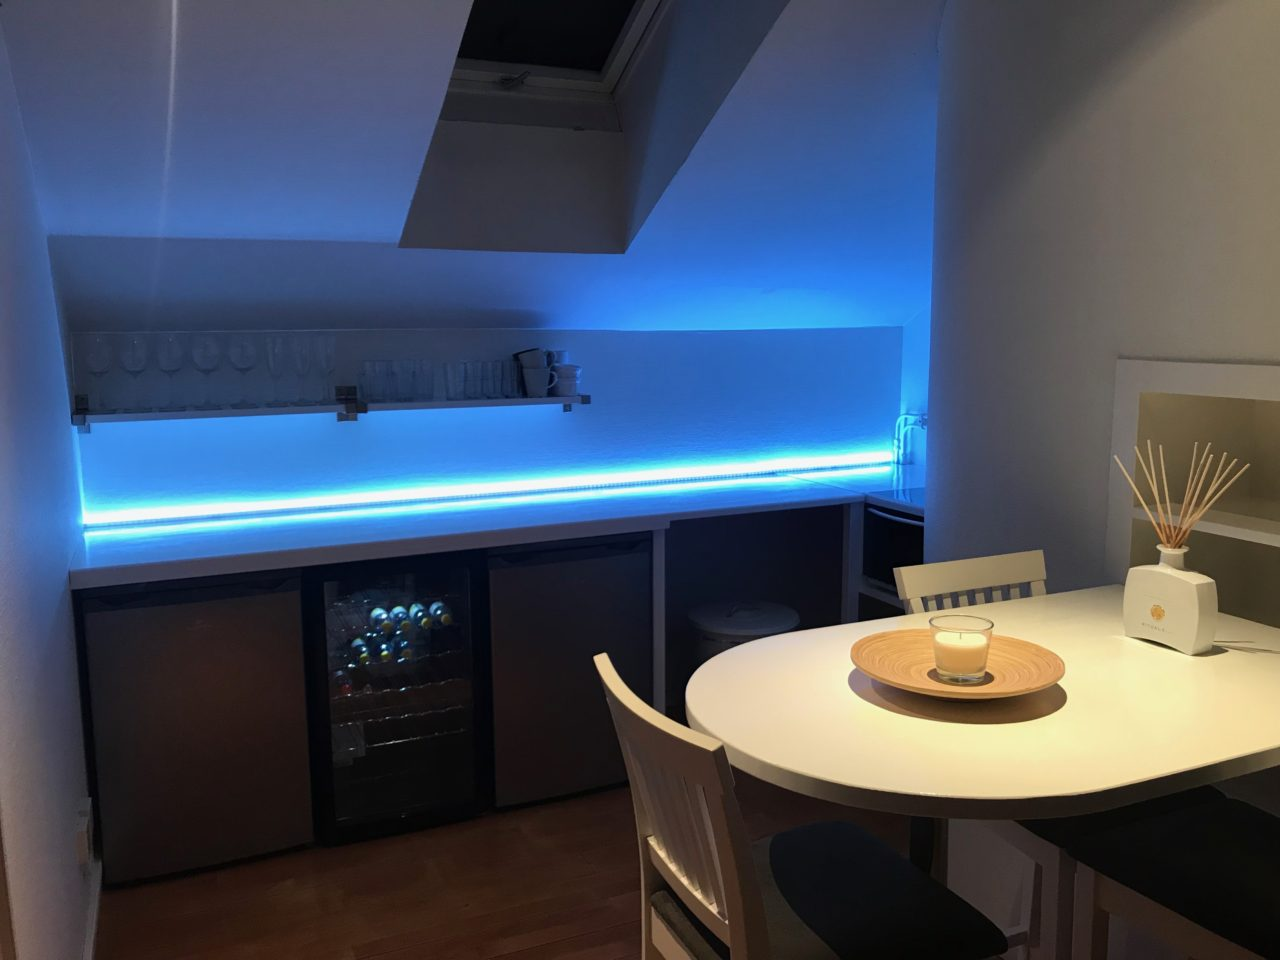 LED Lit Penthouse Kitchen With A Table And Window